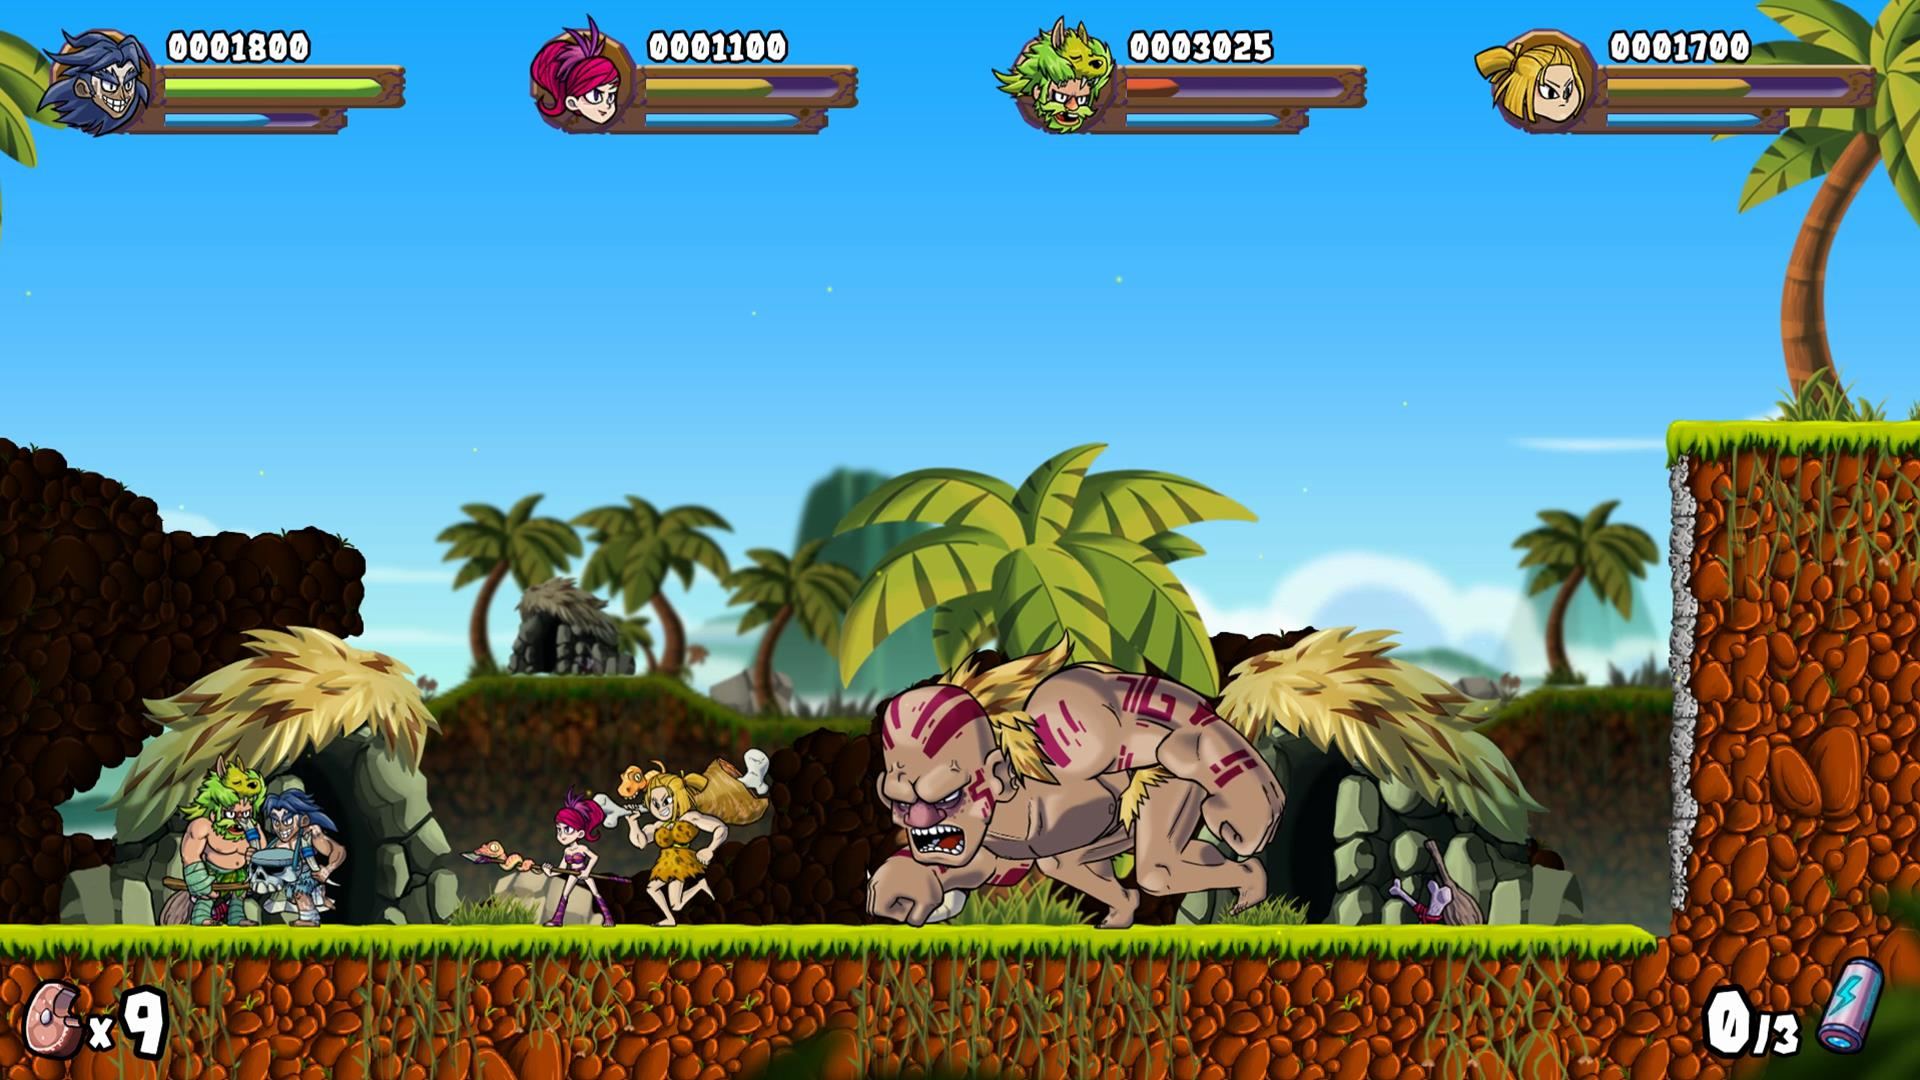 caveman warriors miniboss